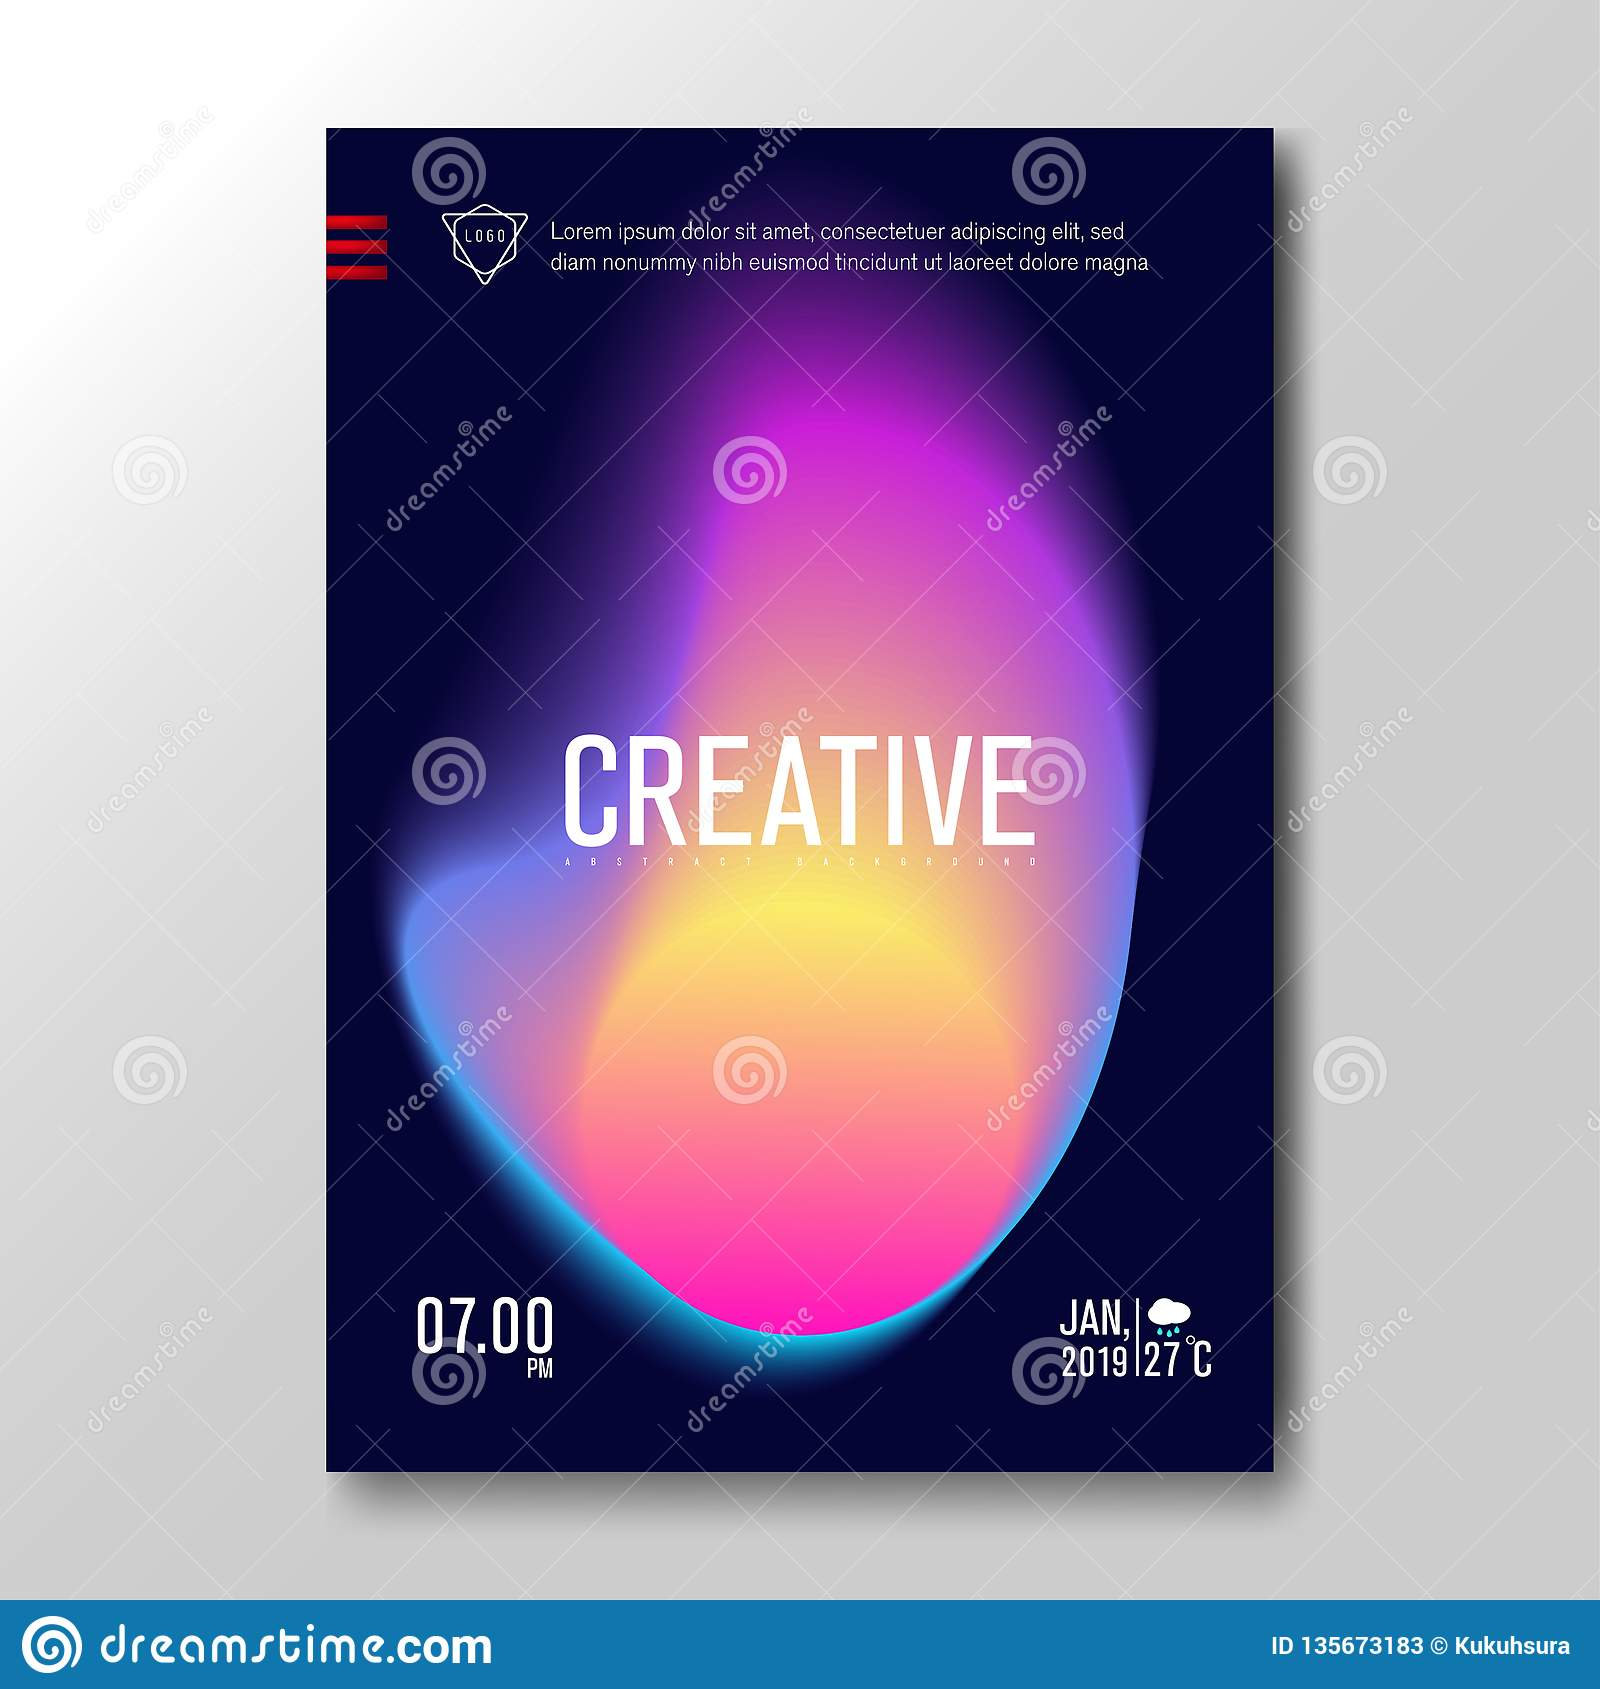 Modern Fluid Blurred Gradient with soft colorful Background for Poster, Invitation Card, Brochure, Advertising, Placard, Music